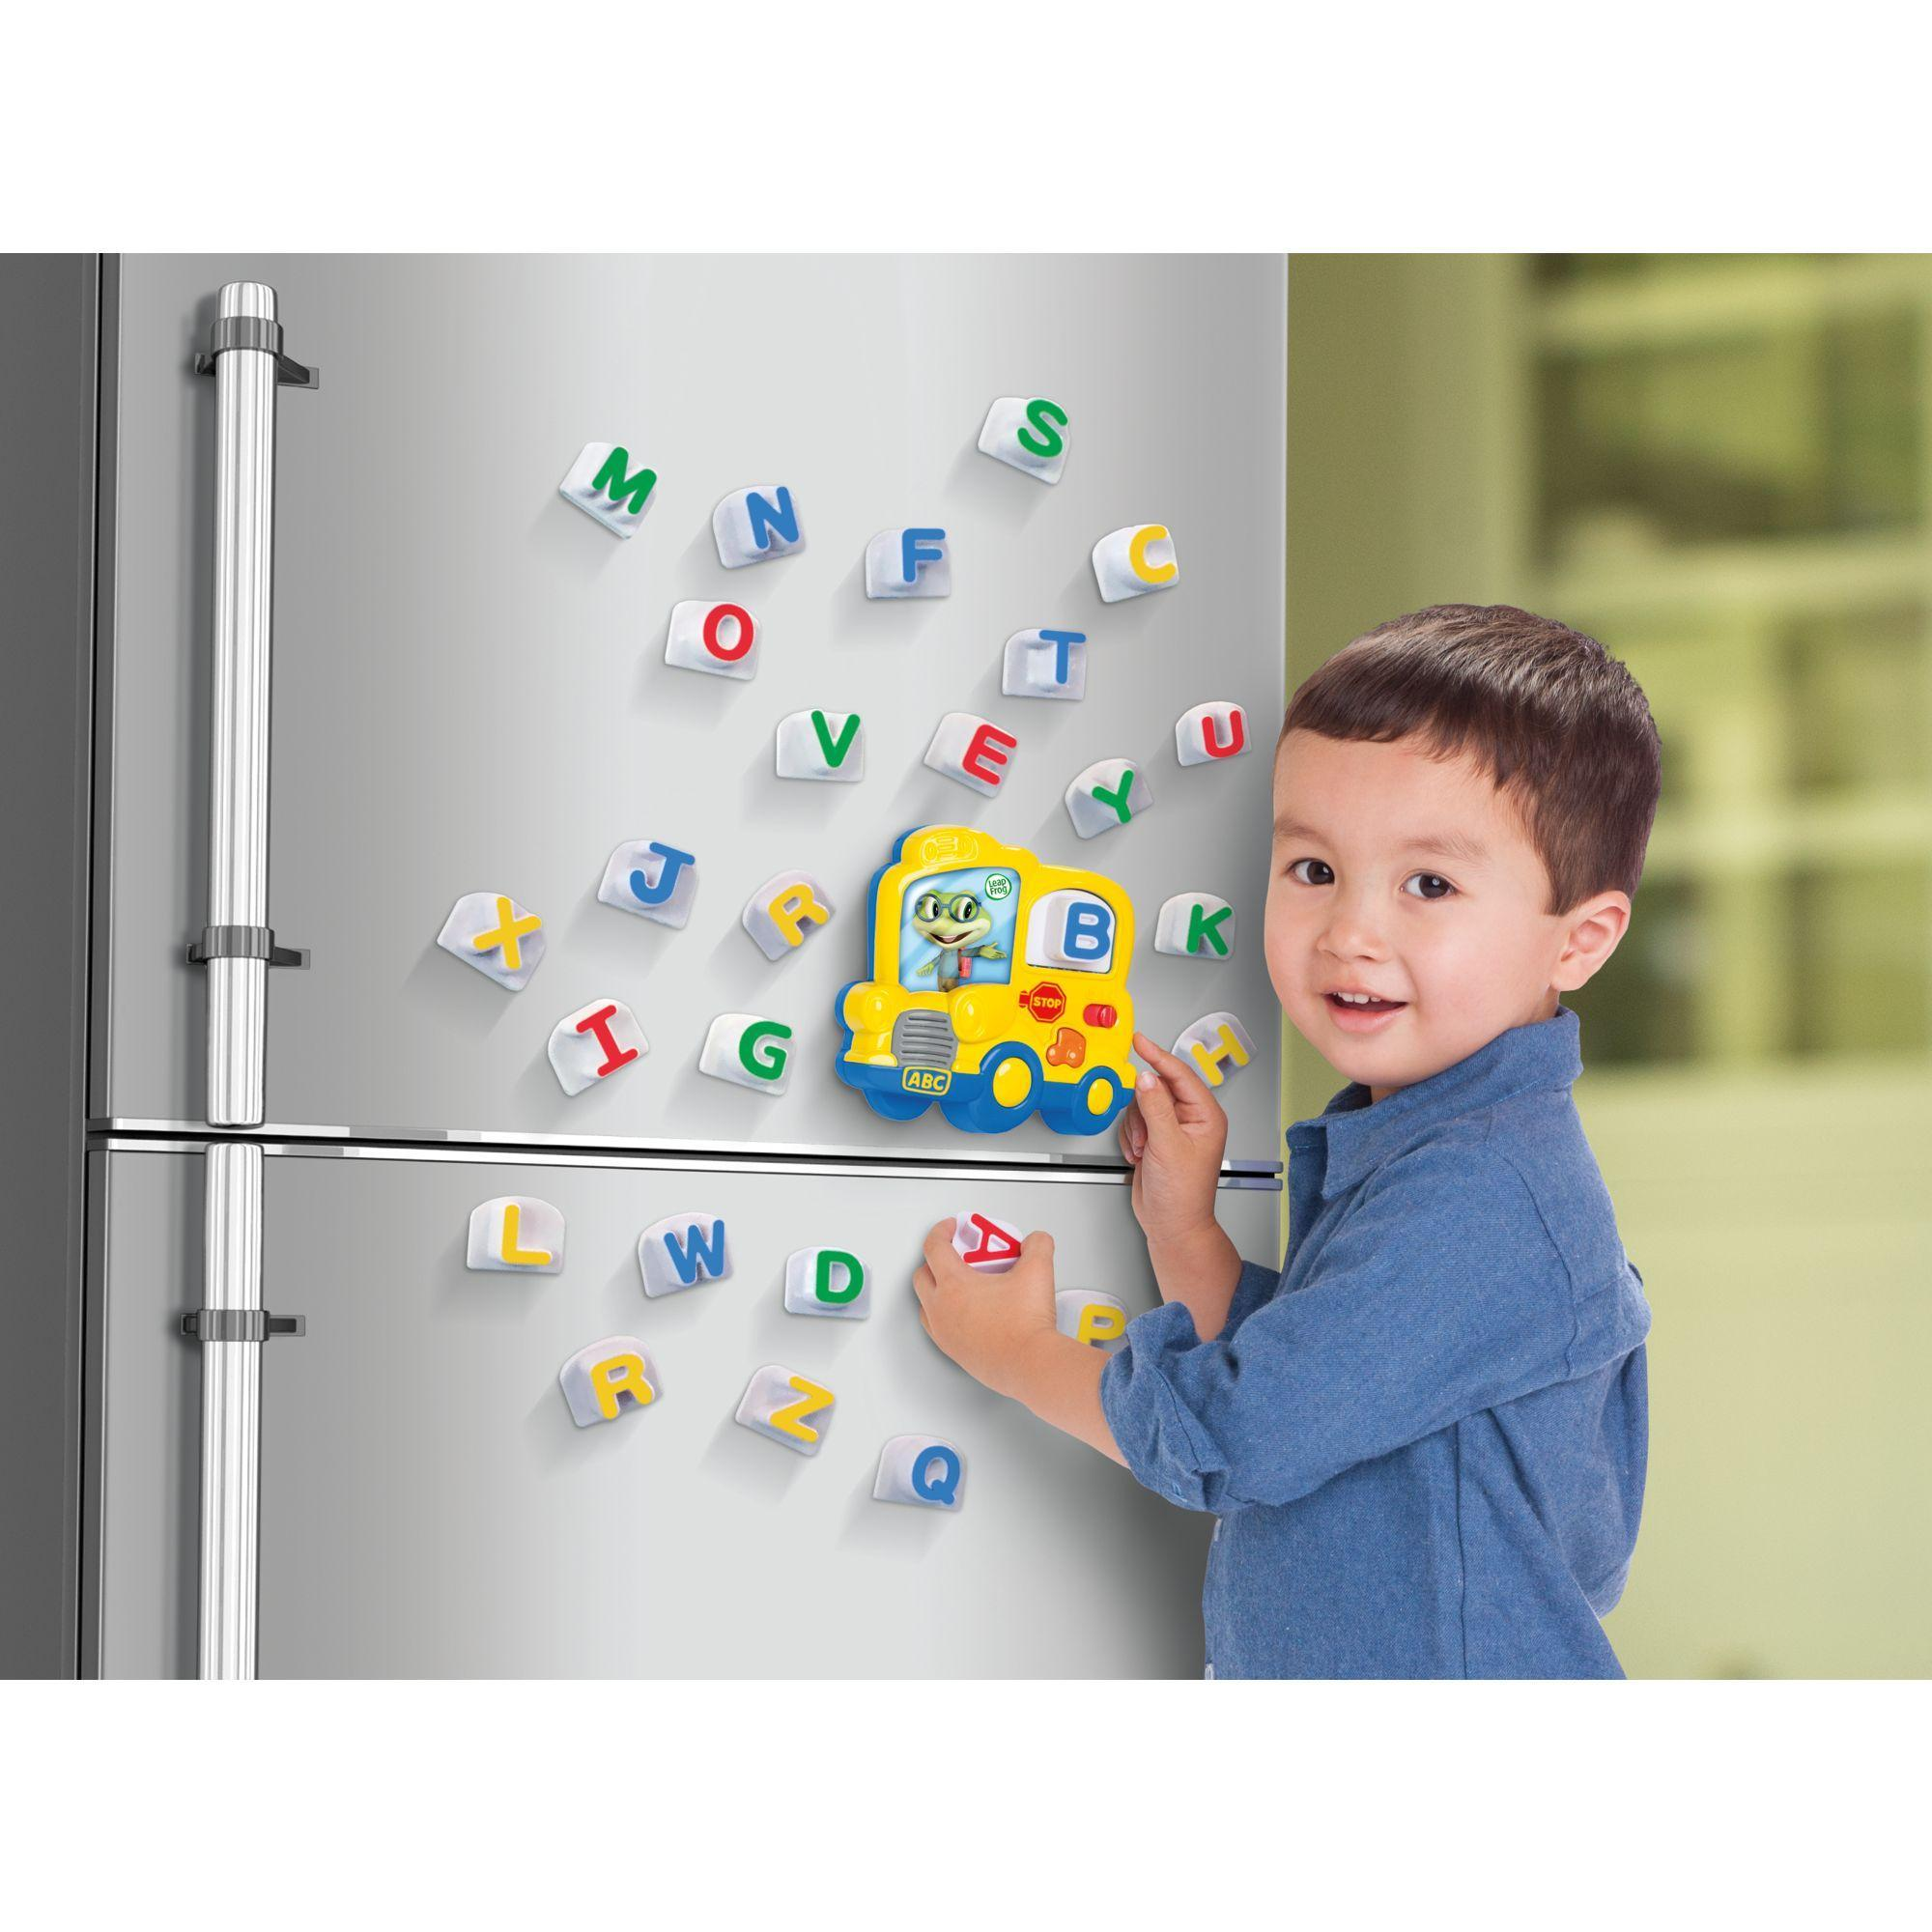 LeapFrog Fridge Phonics Magnetic Letter Set Amazon Toys